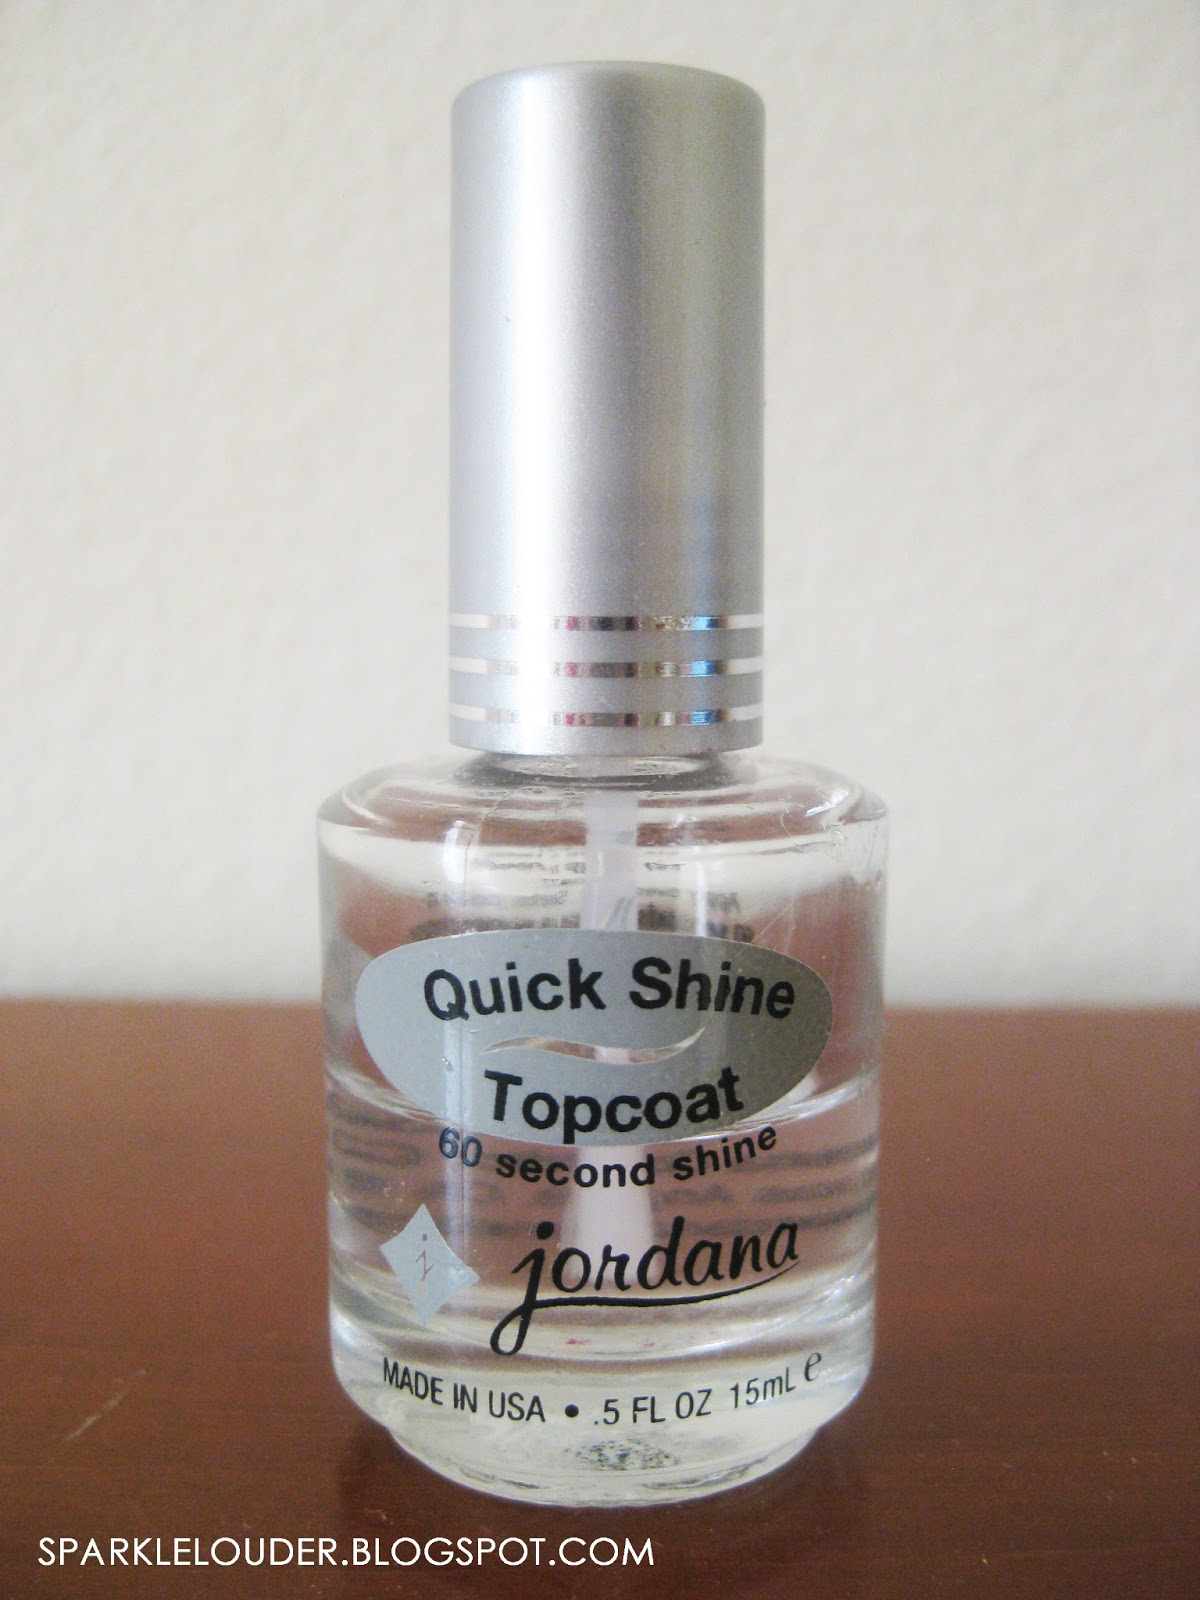 Sparkle Louder: Review On: Jordana Quick Shine TopCoat